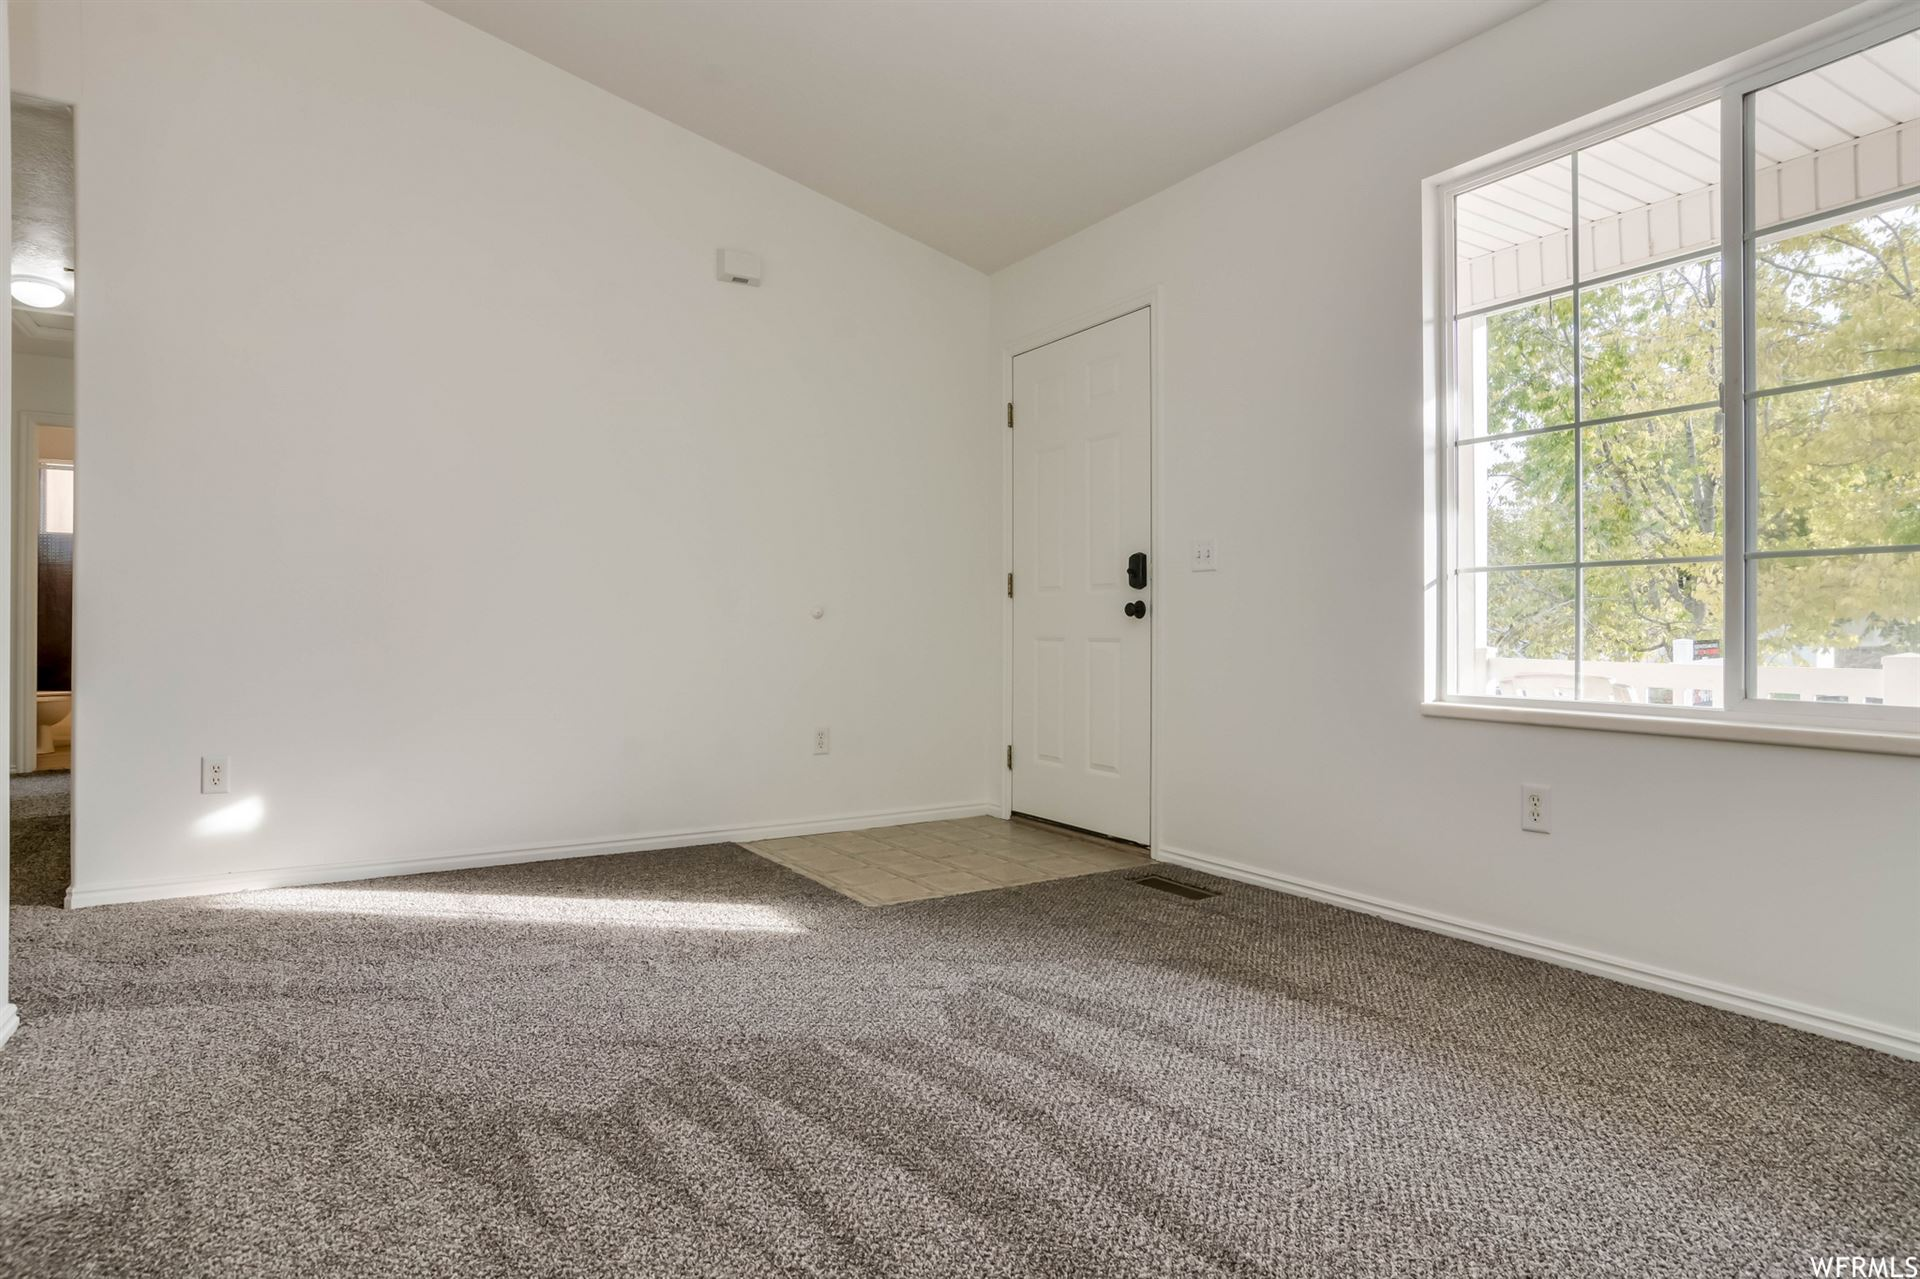 Photo of 3268 S HUNTER VIEW W DR, West Valley City, UT 84128 (MLS # 1775982)